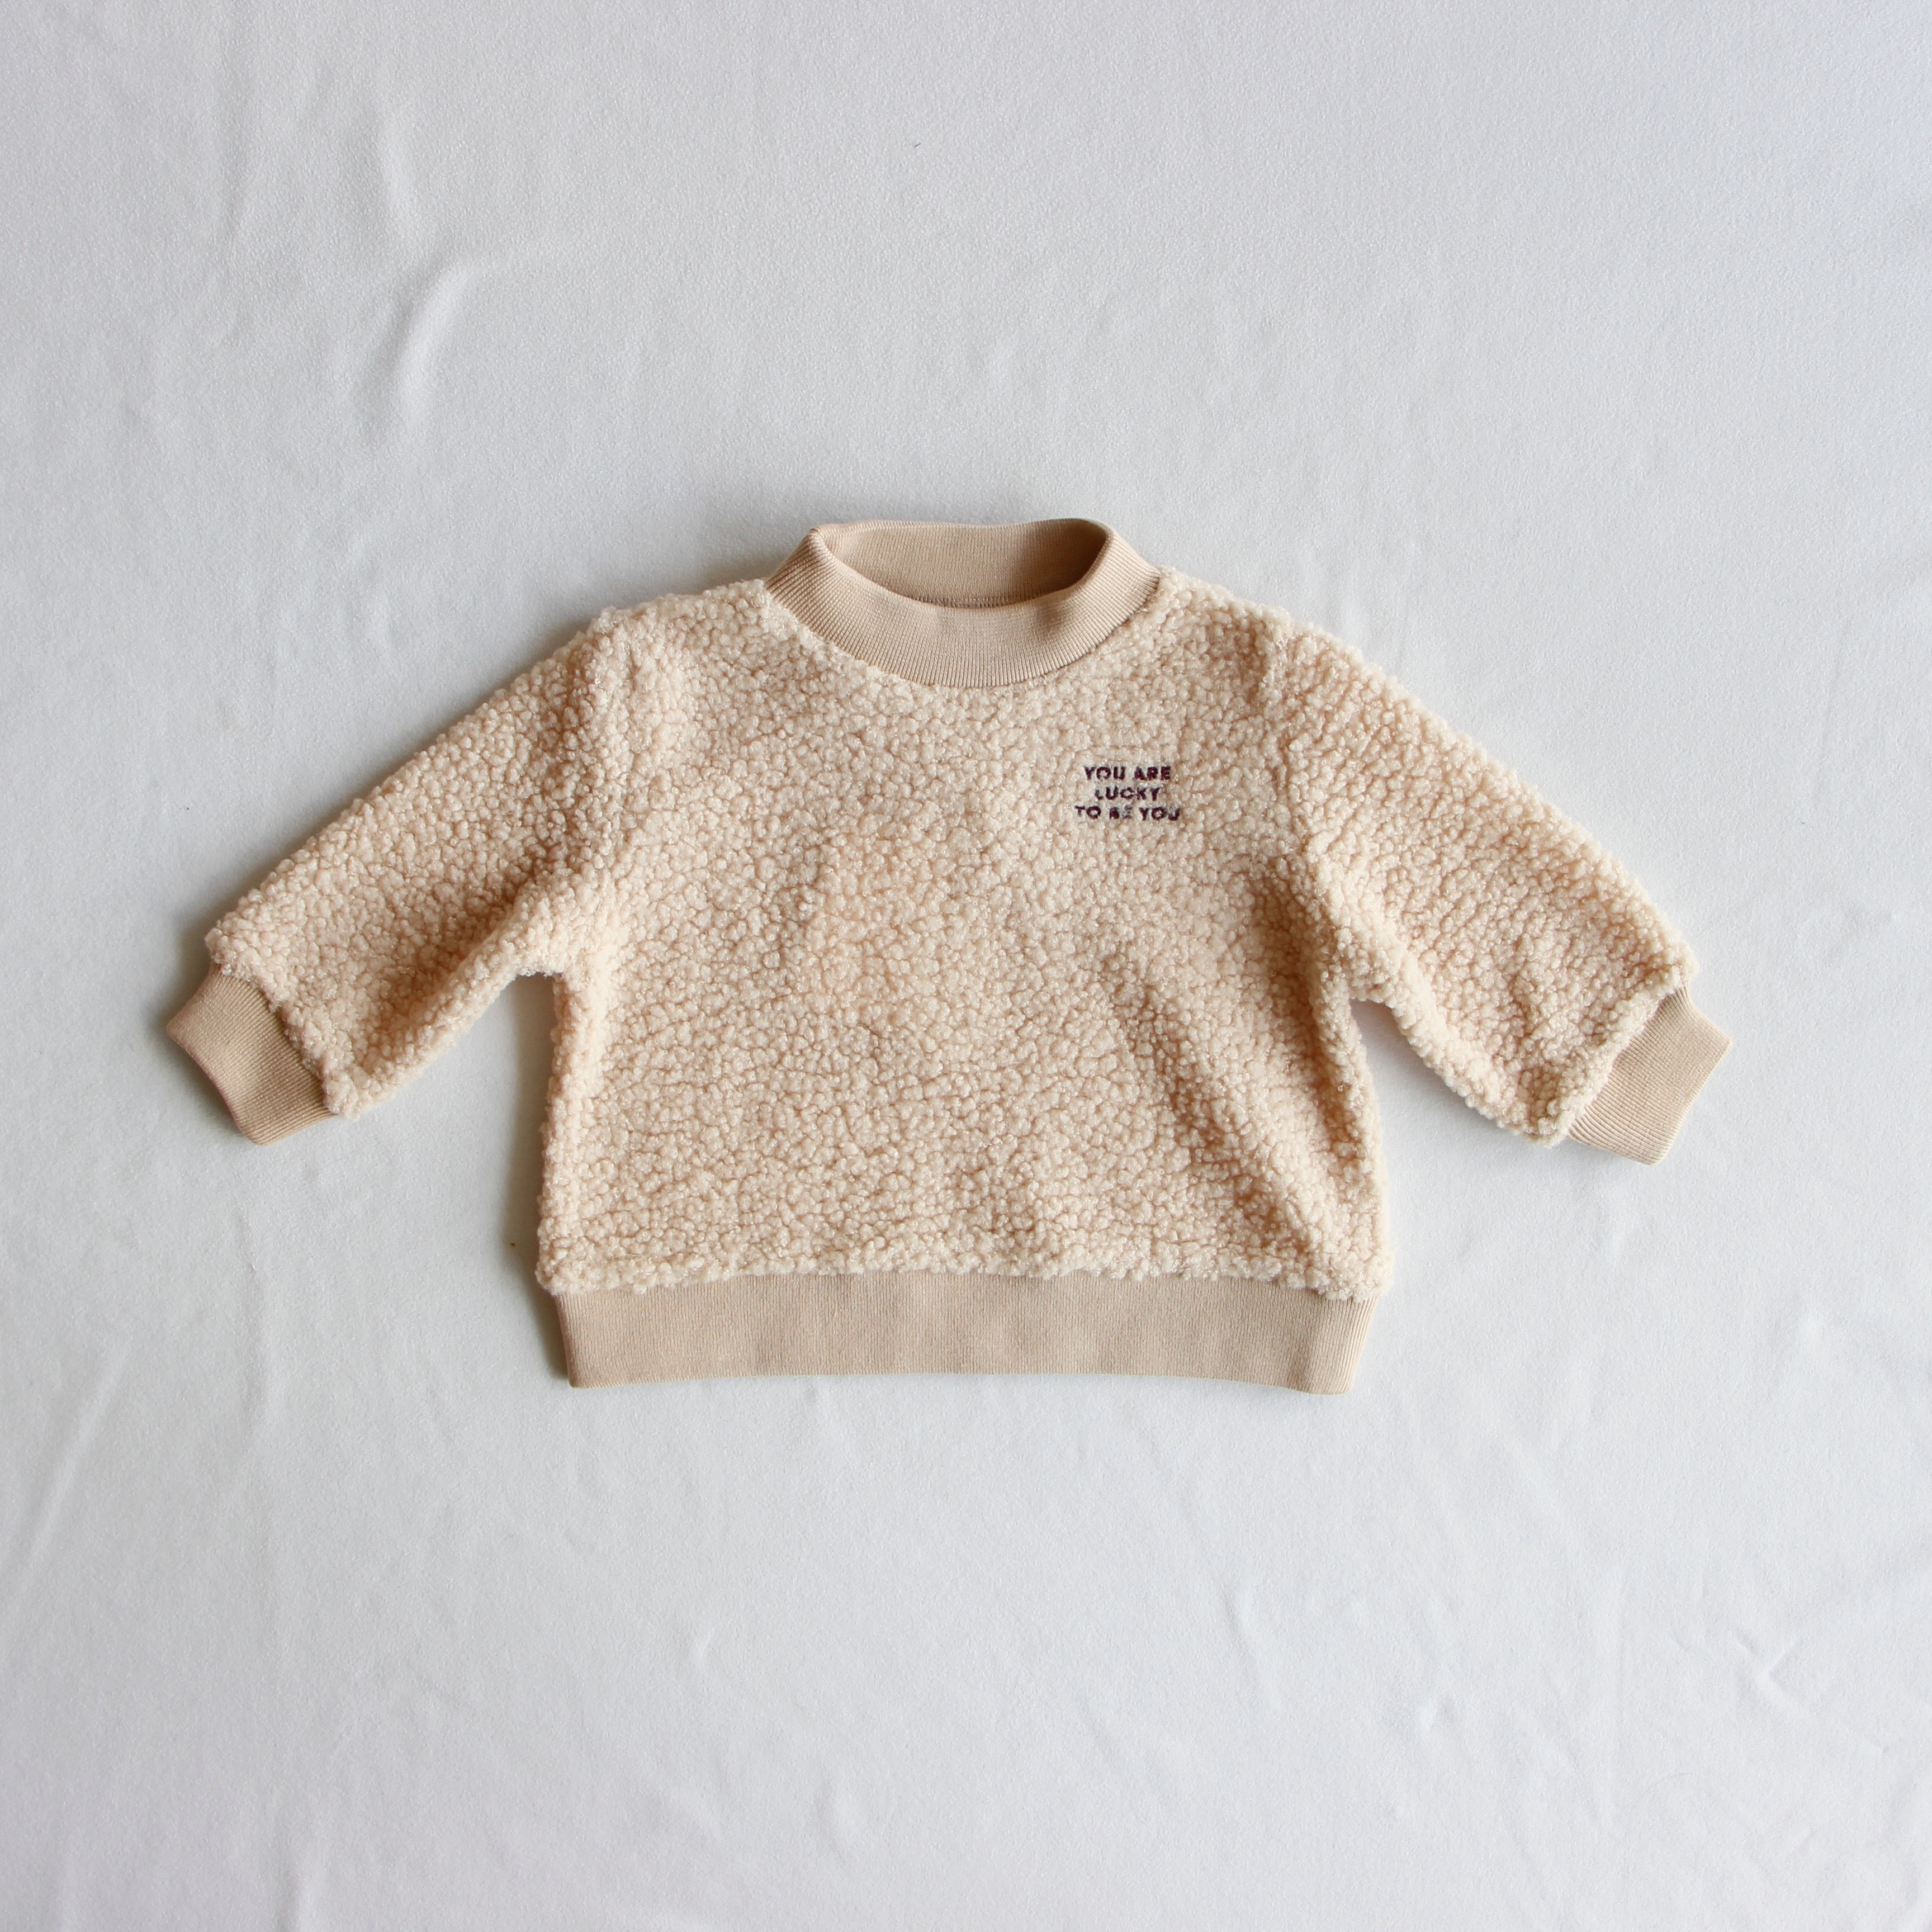 《TINYCOTTONS 2019AW》YOU ARE LUCKY SWEATSHIRT / sand × aubergine